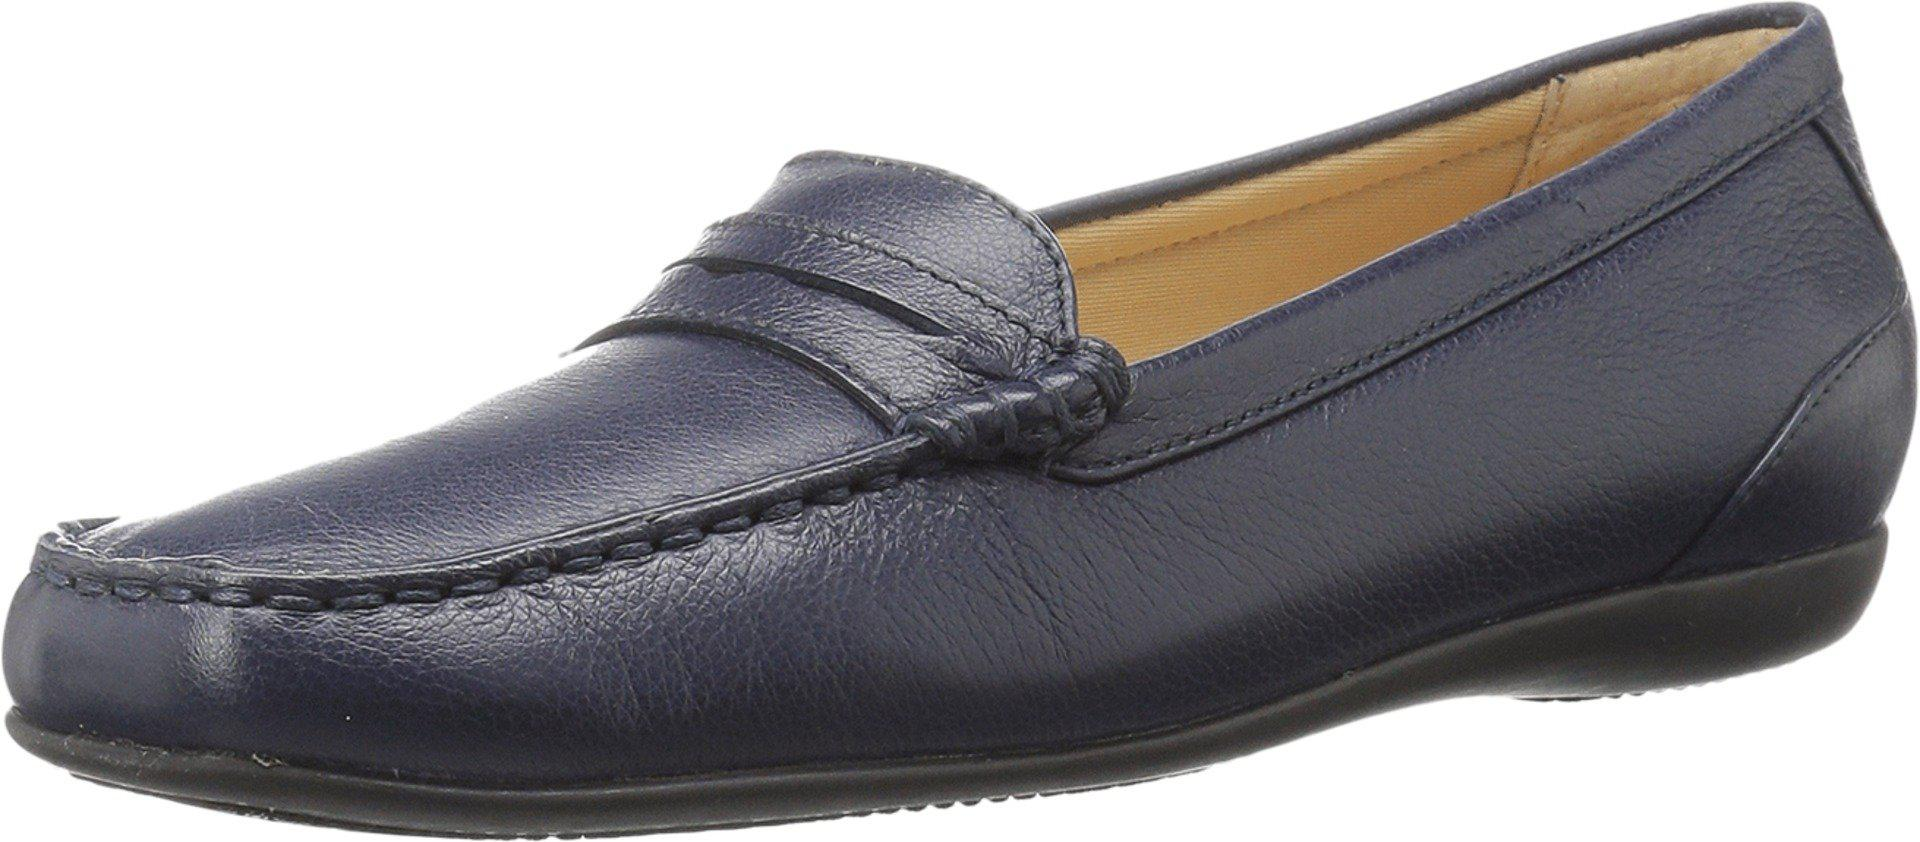 b46ded74499 Lyst - Trotters Staci for Men